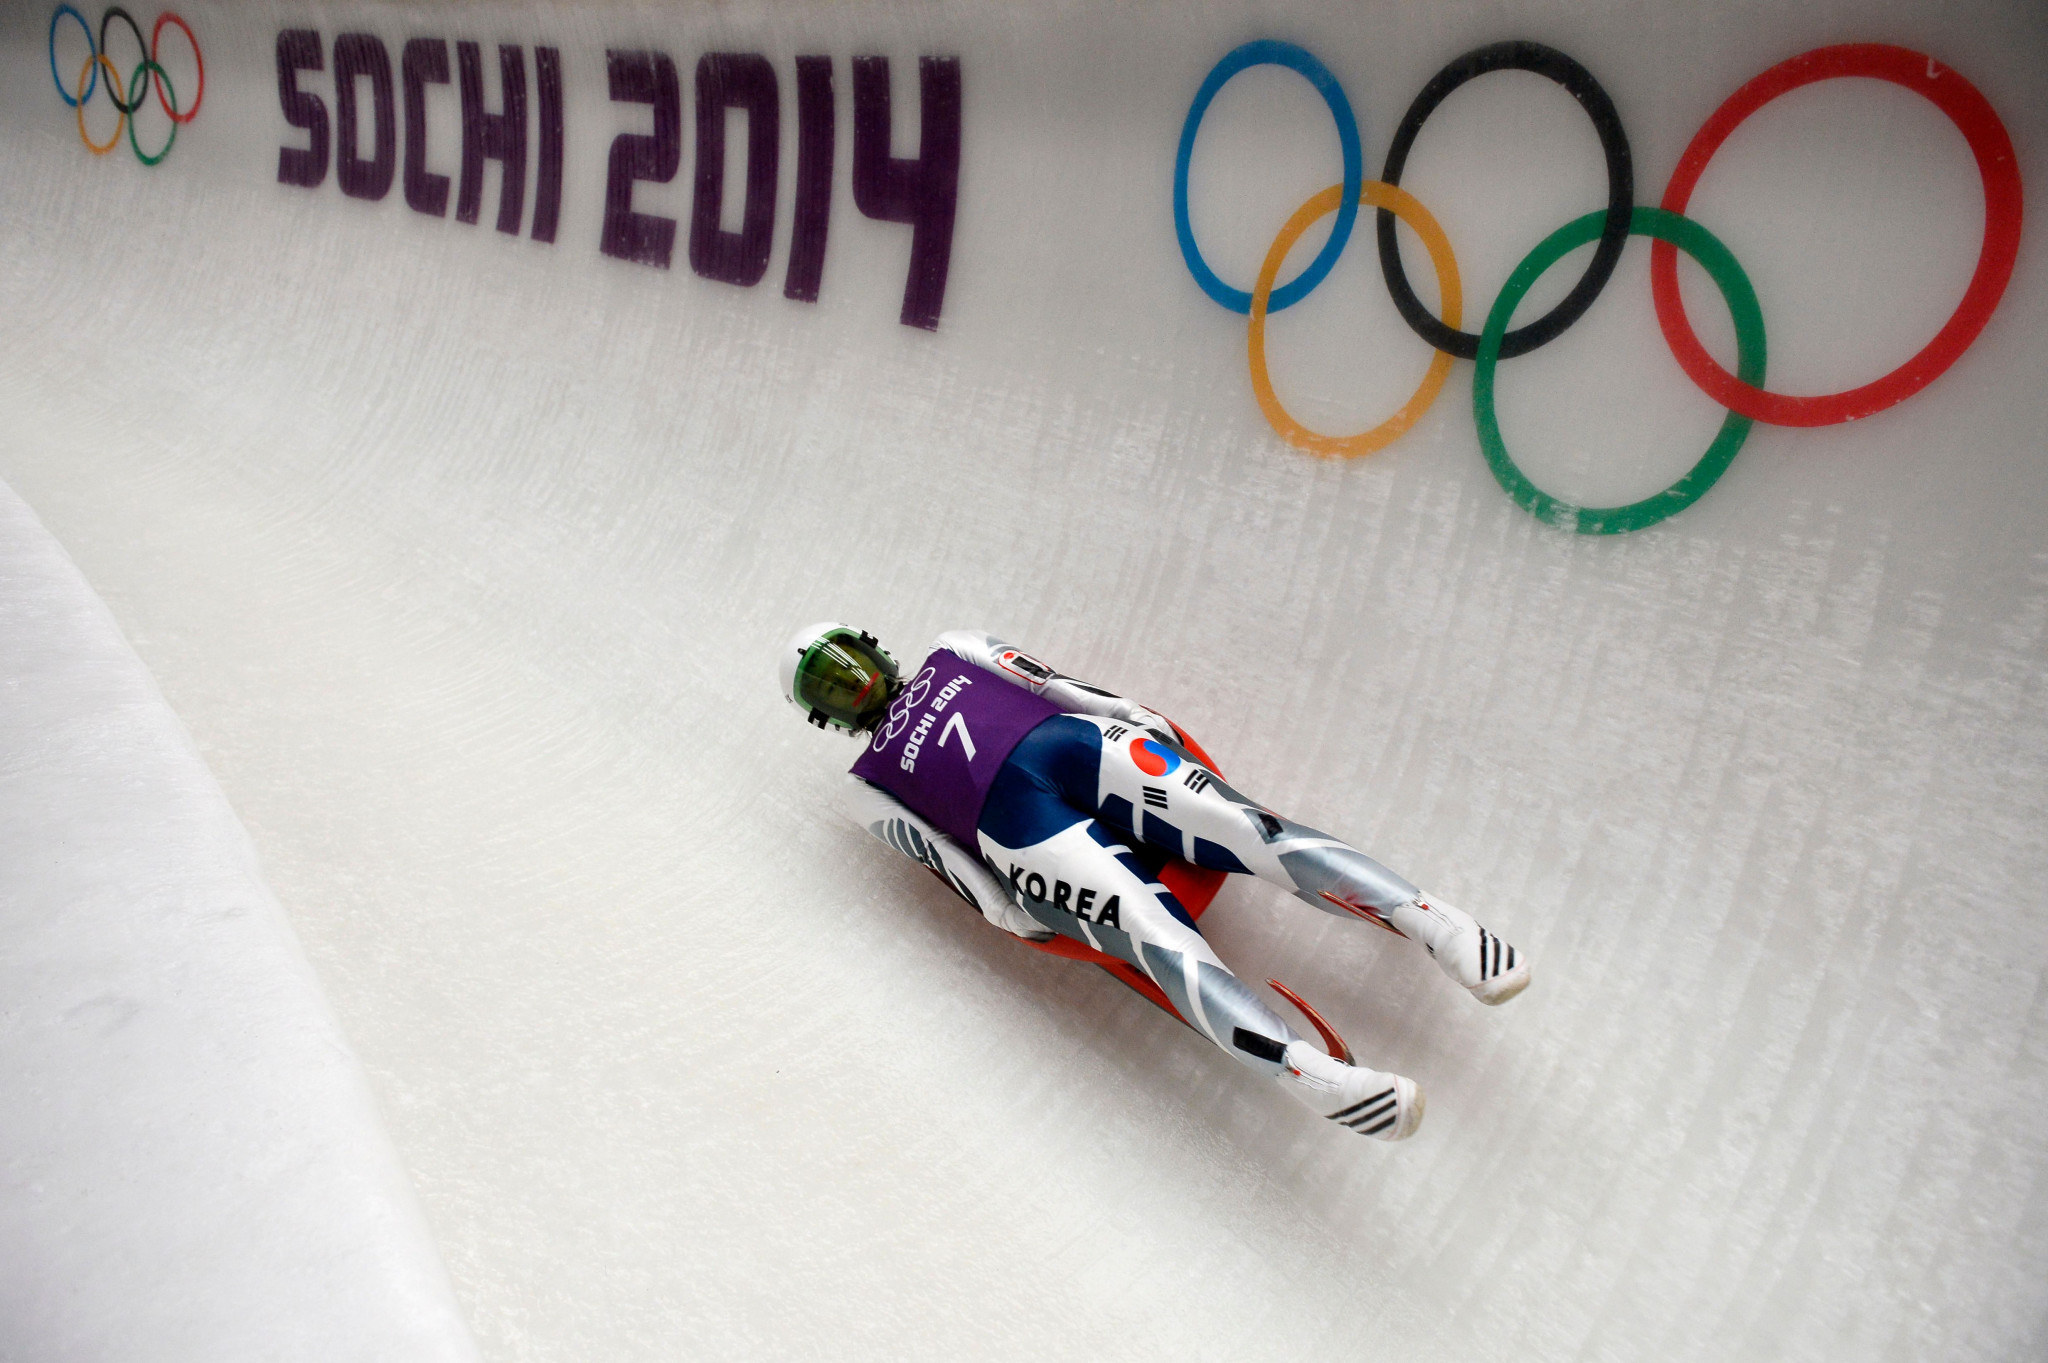 Sochi 2014's reported costs may have put off future bidders ©Getty Images